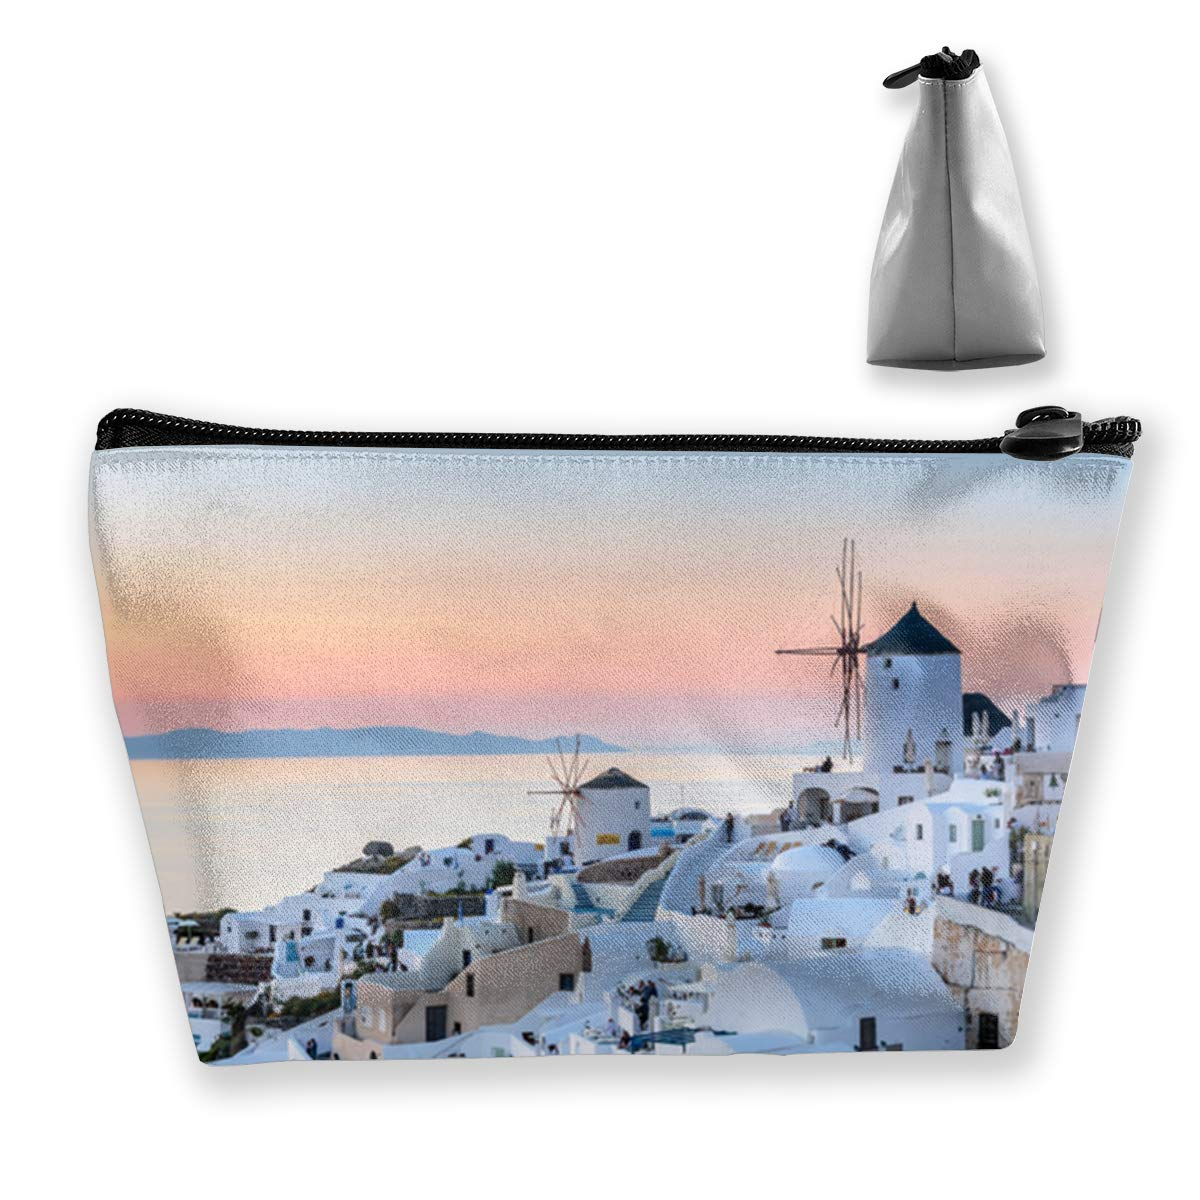 Beautiful Santorini Greece Trapezoid Cosmetic Make-Up Bags Travel Cluth Bag Pouch Case For Women Girls 7X12X22 Cm